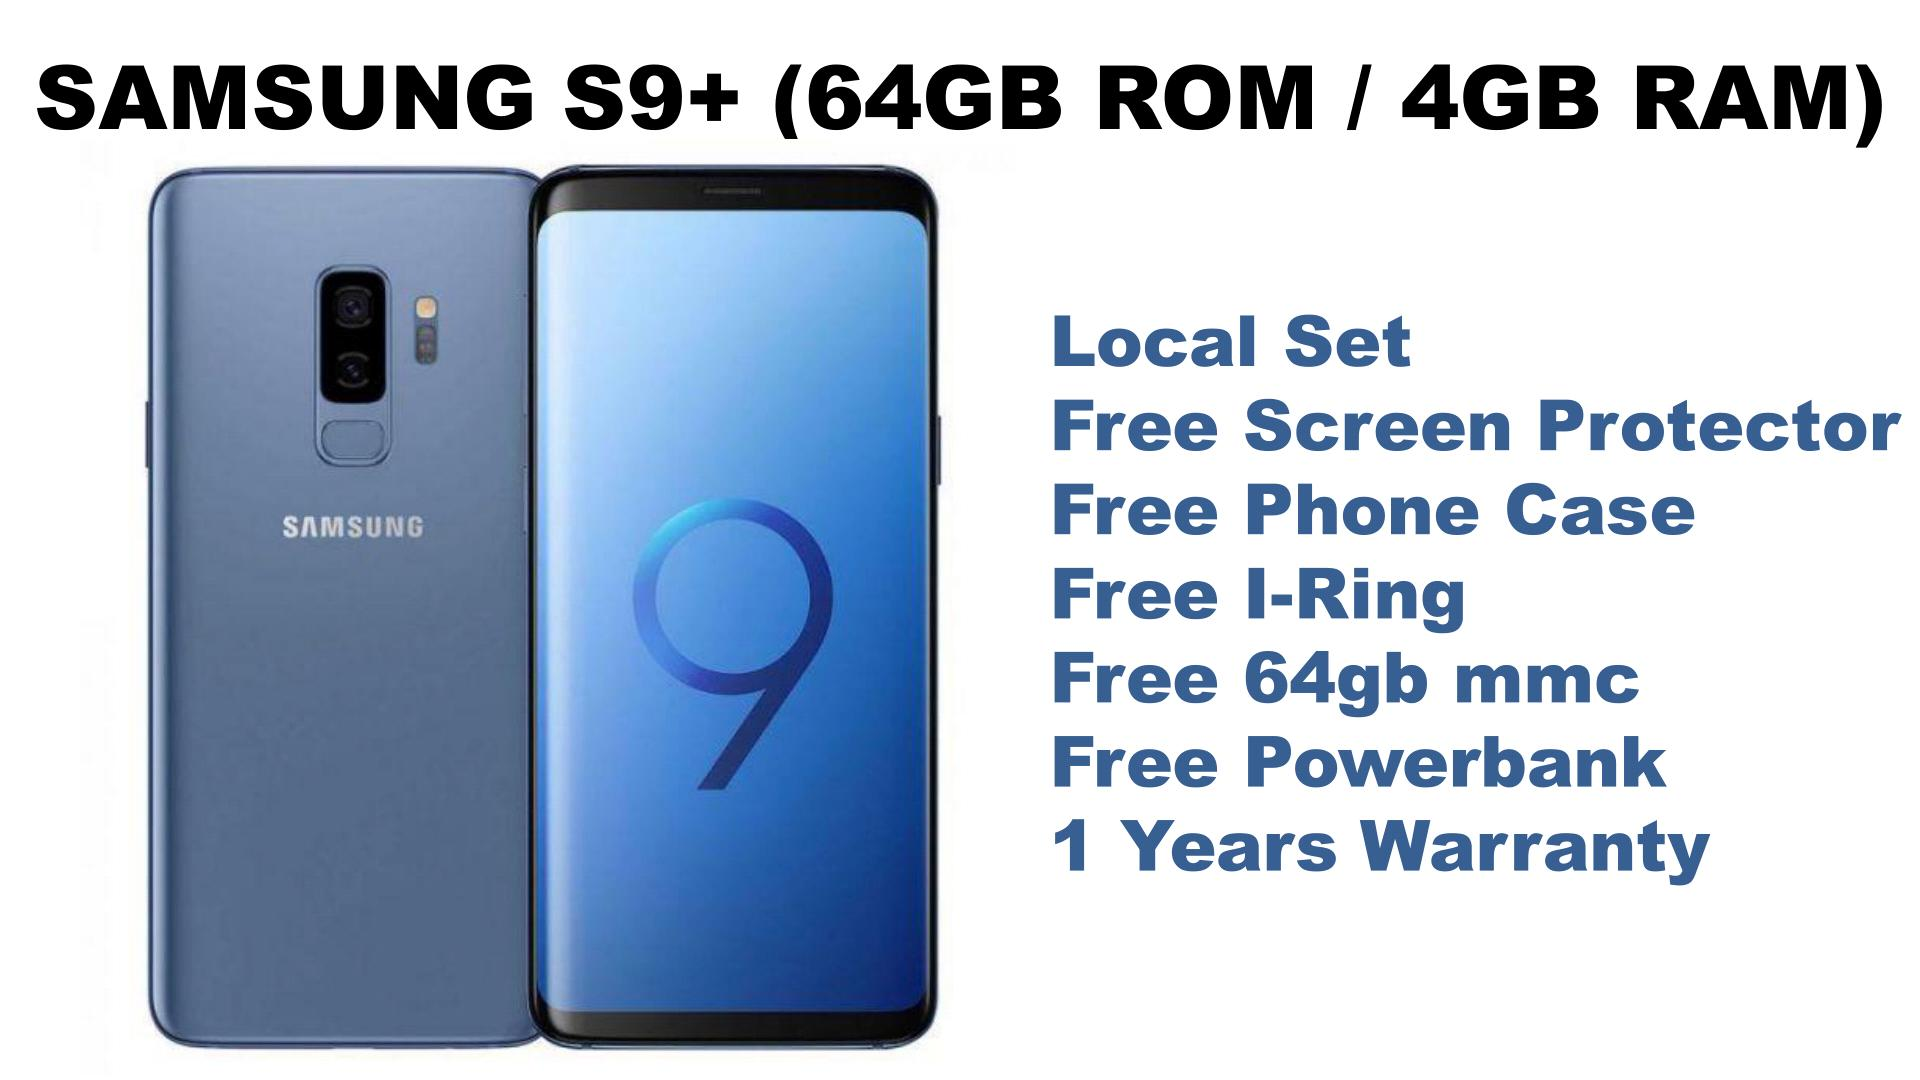 SAMSUNG S9 PLUS 64GB ( LOCAL SET WITH 1 YEAR WARRANTY ) + FREE GIFTS